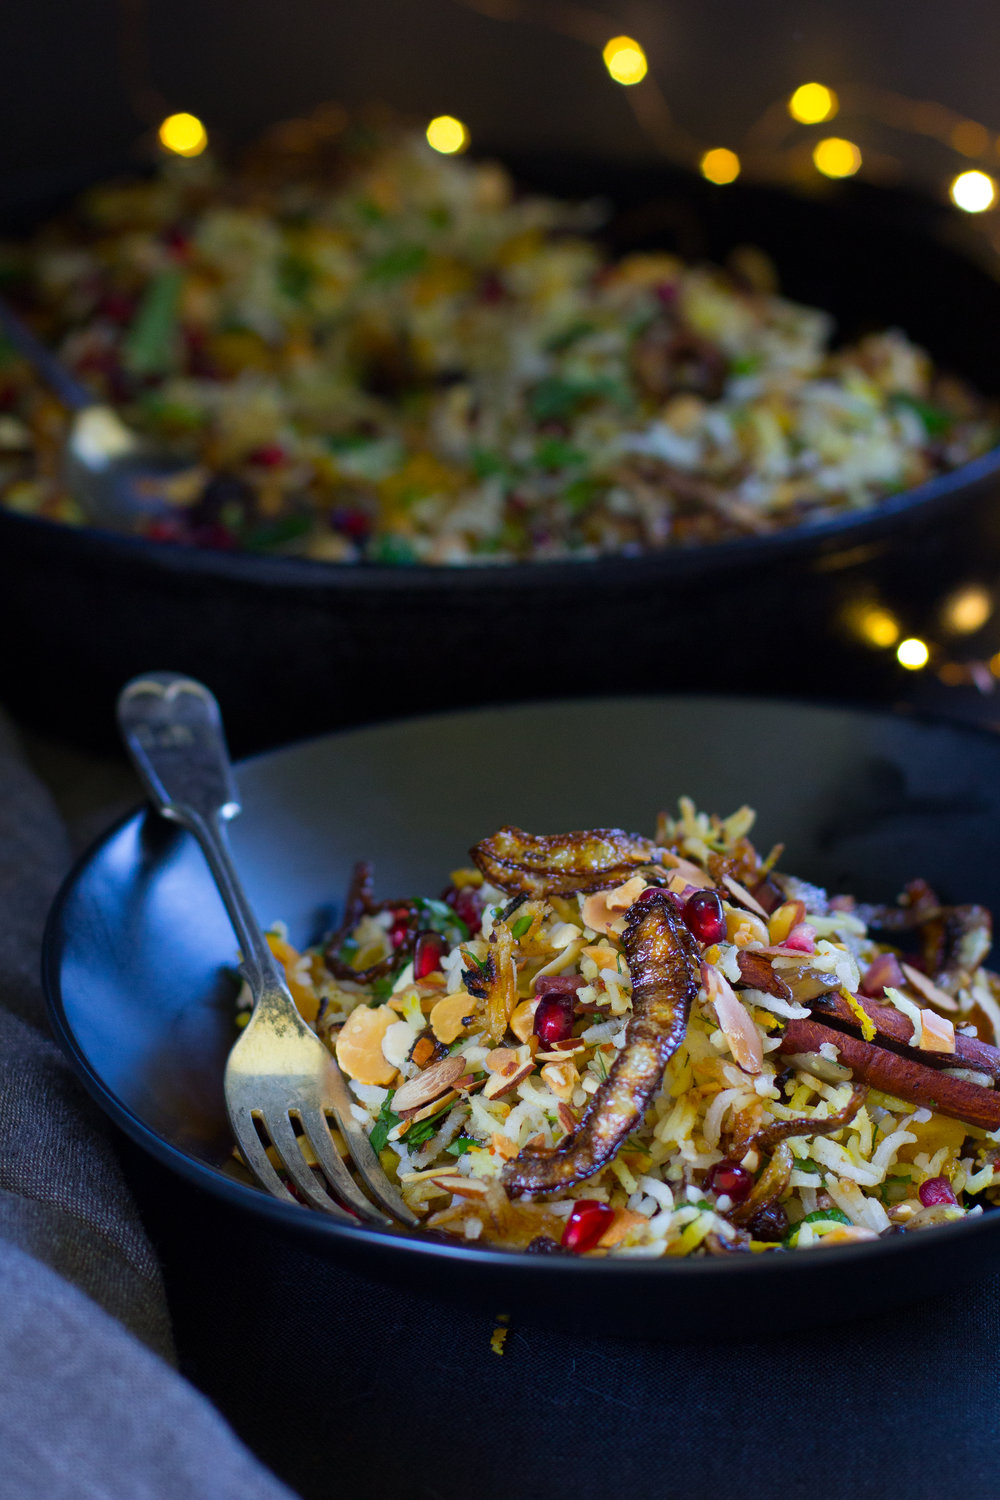 Spiced rice studded with gleaming pomegranate seeds, toasted almonds, dried fruit, fresh mint and orange zest